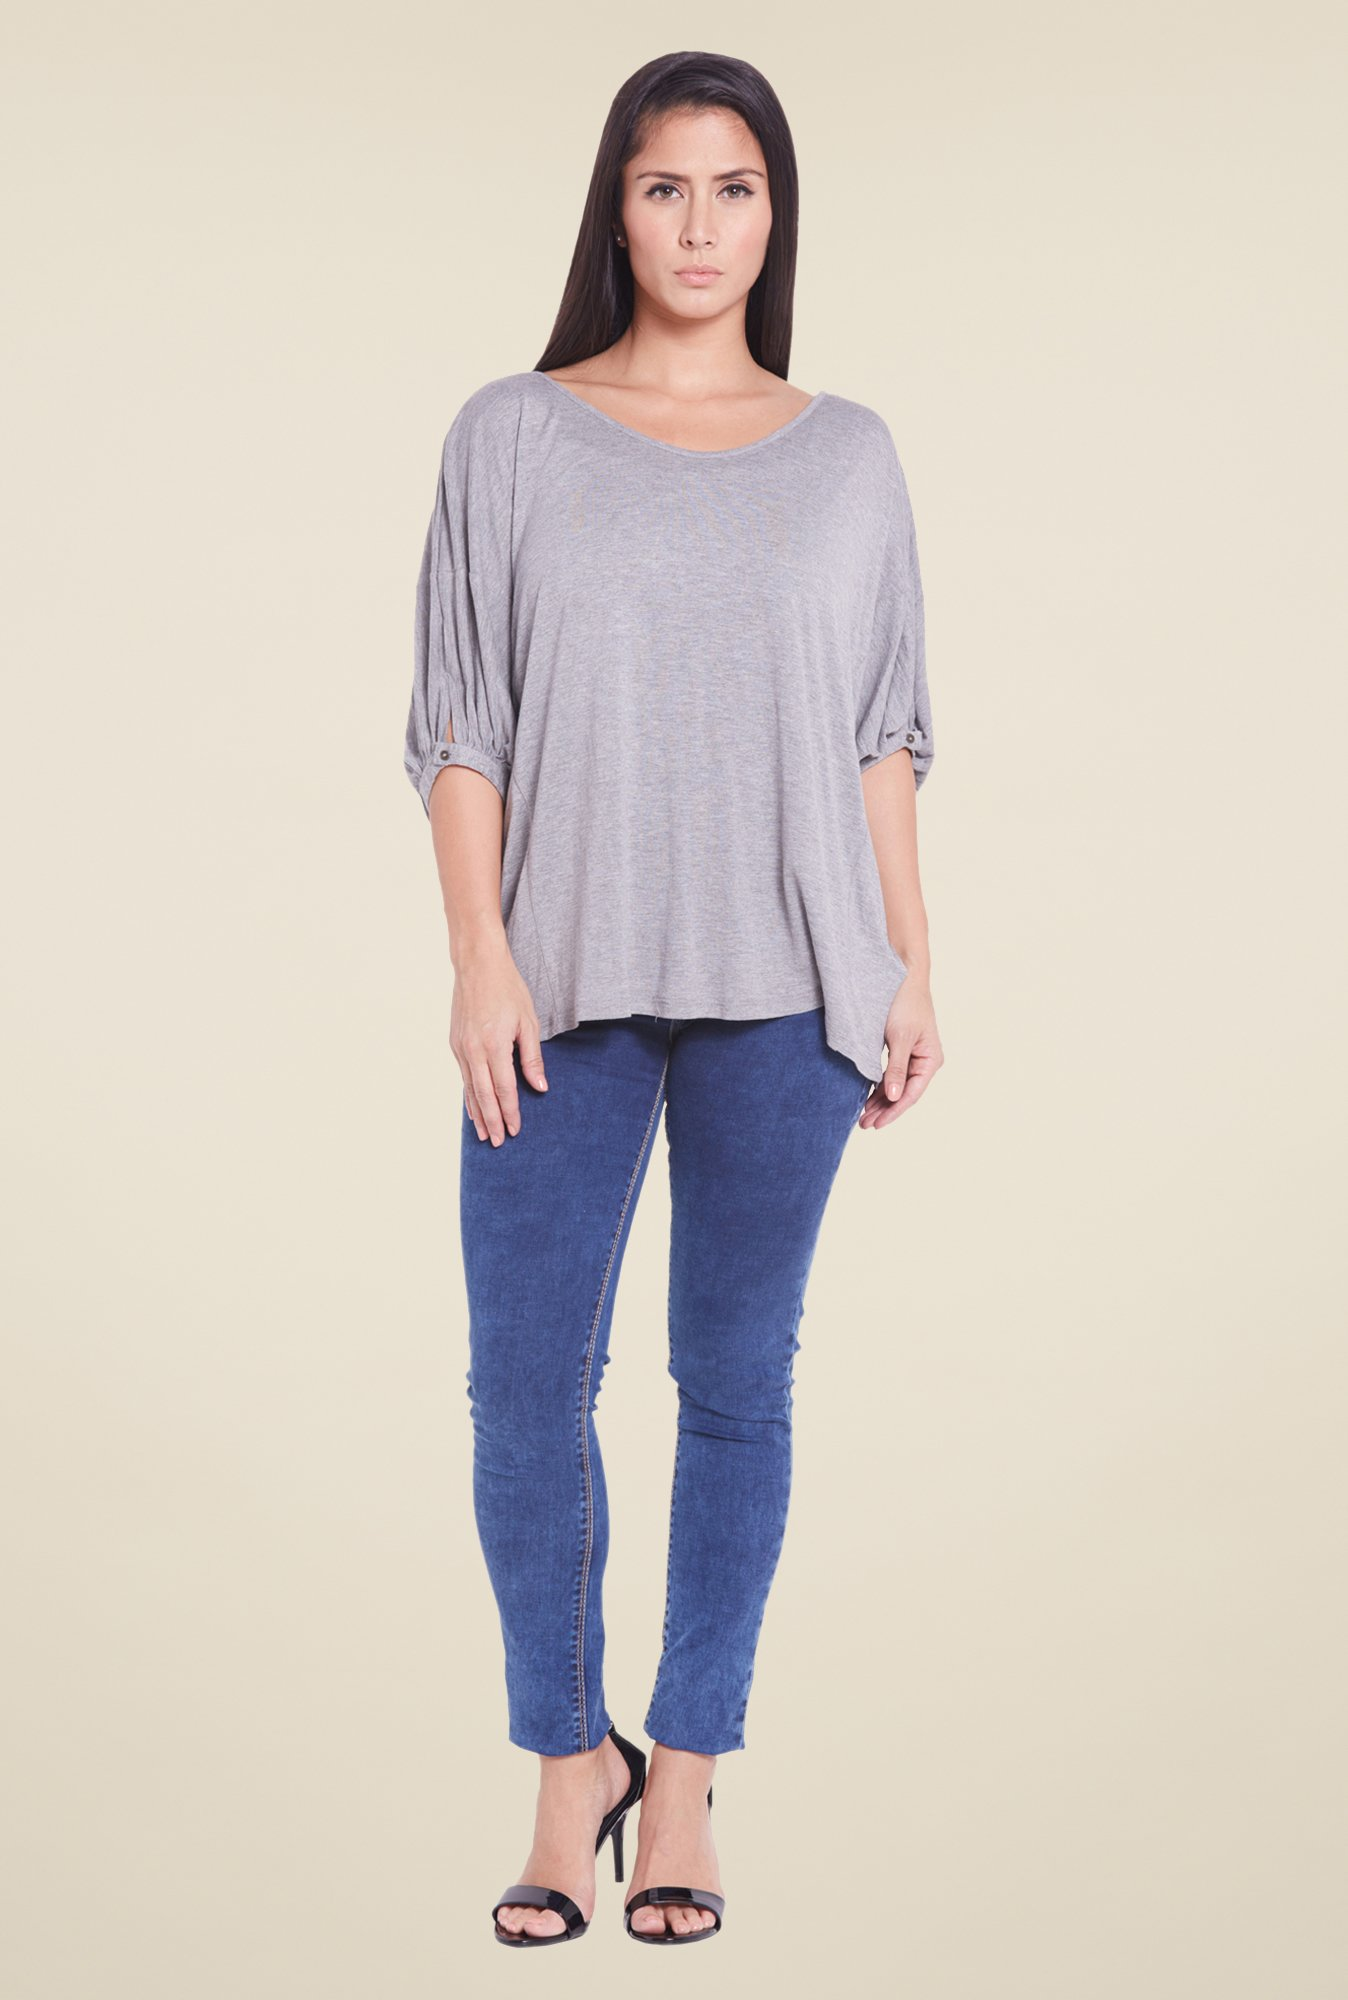 Globus Grey Round Neck Solid Top